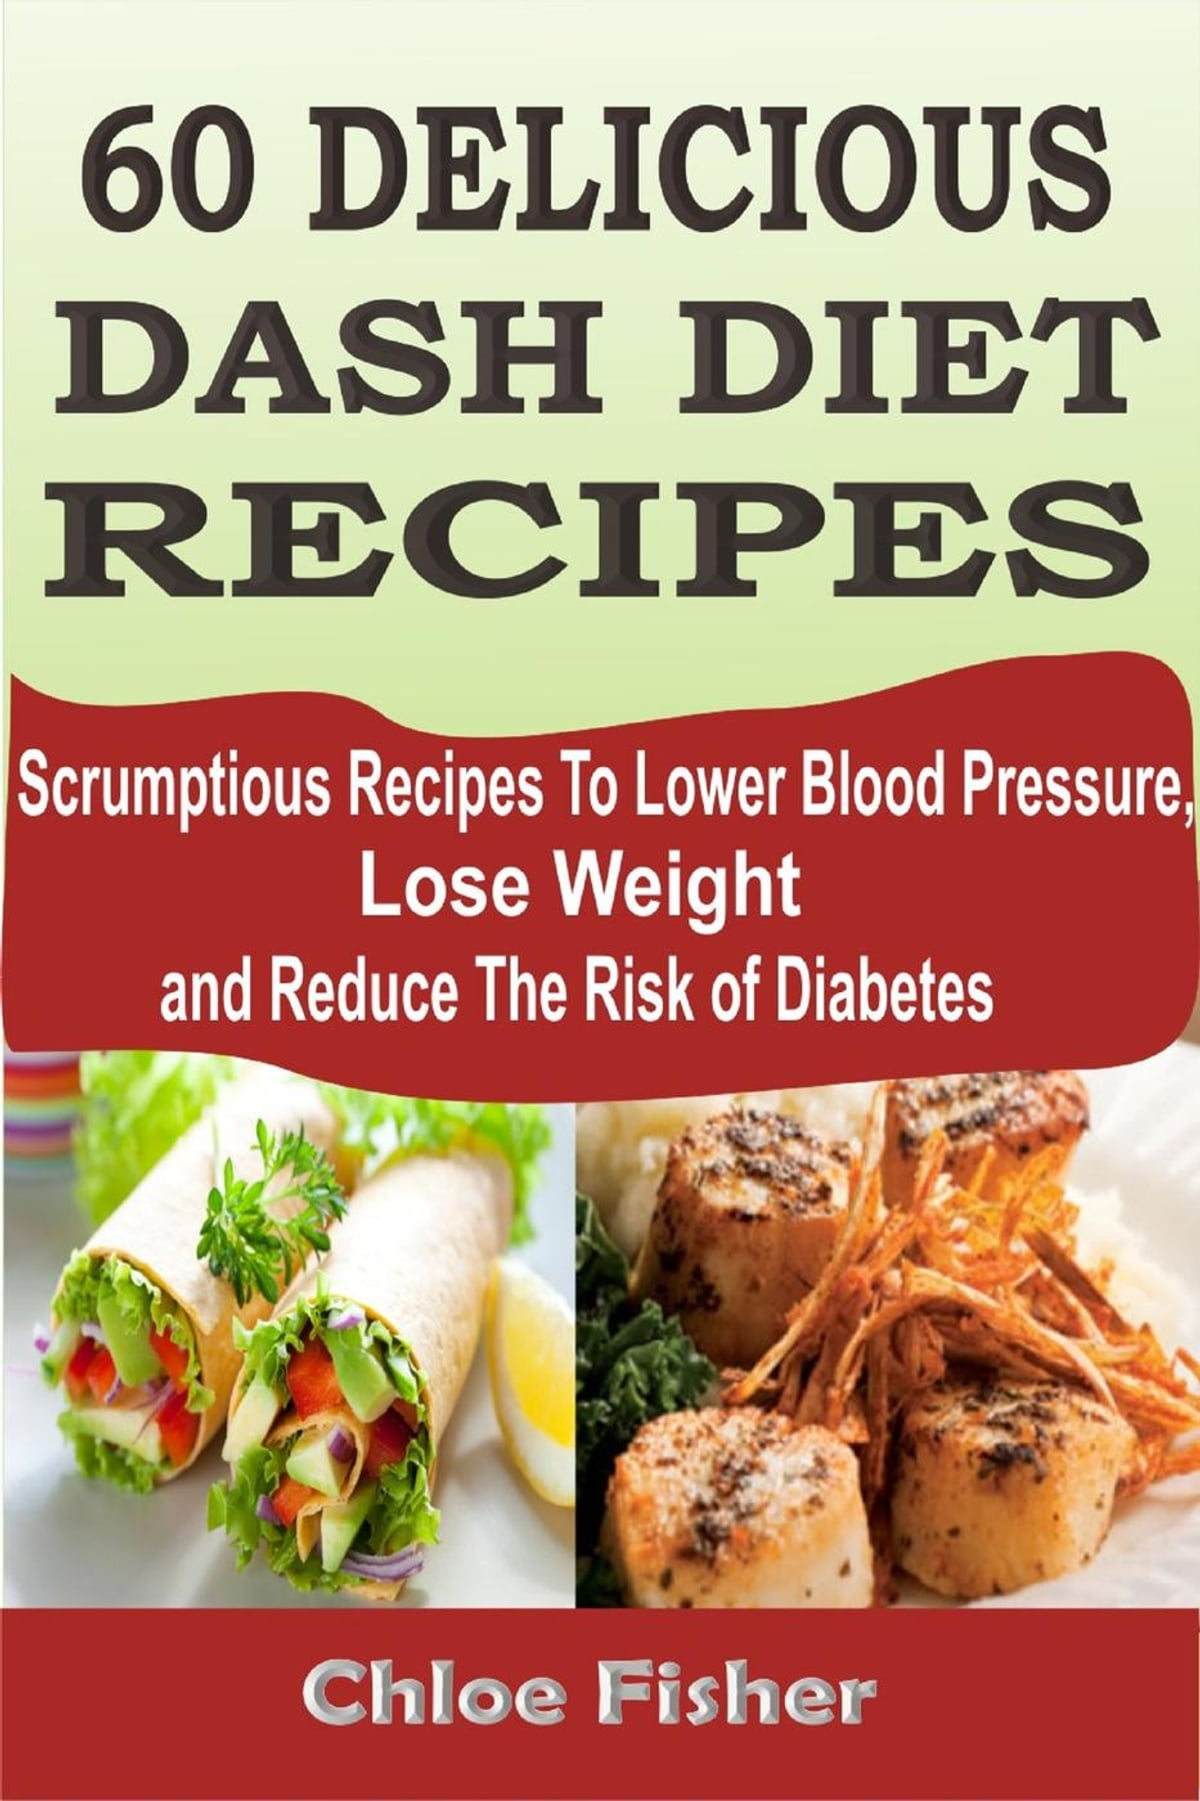 60 delicious dash diet recipes scrumptious recipes to lower blood 60 delicious dash diet recipes scrumptious recipes to lower blood pressure lose weight and reduce the risk of diabetes ebook by chloe fisher forumfinder Choice Image